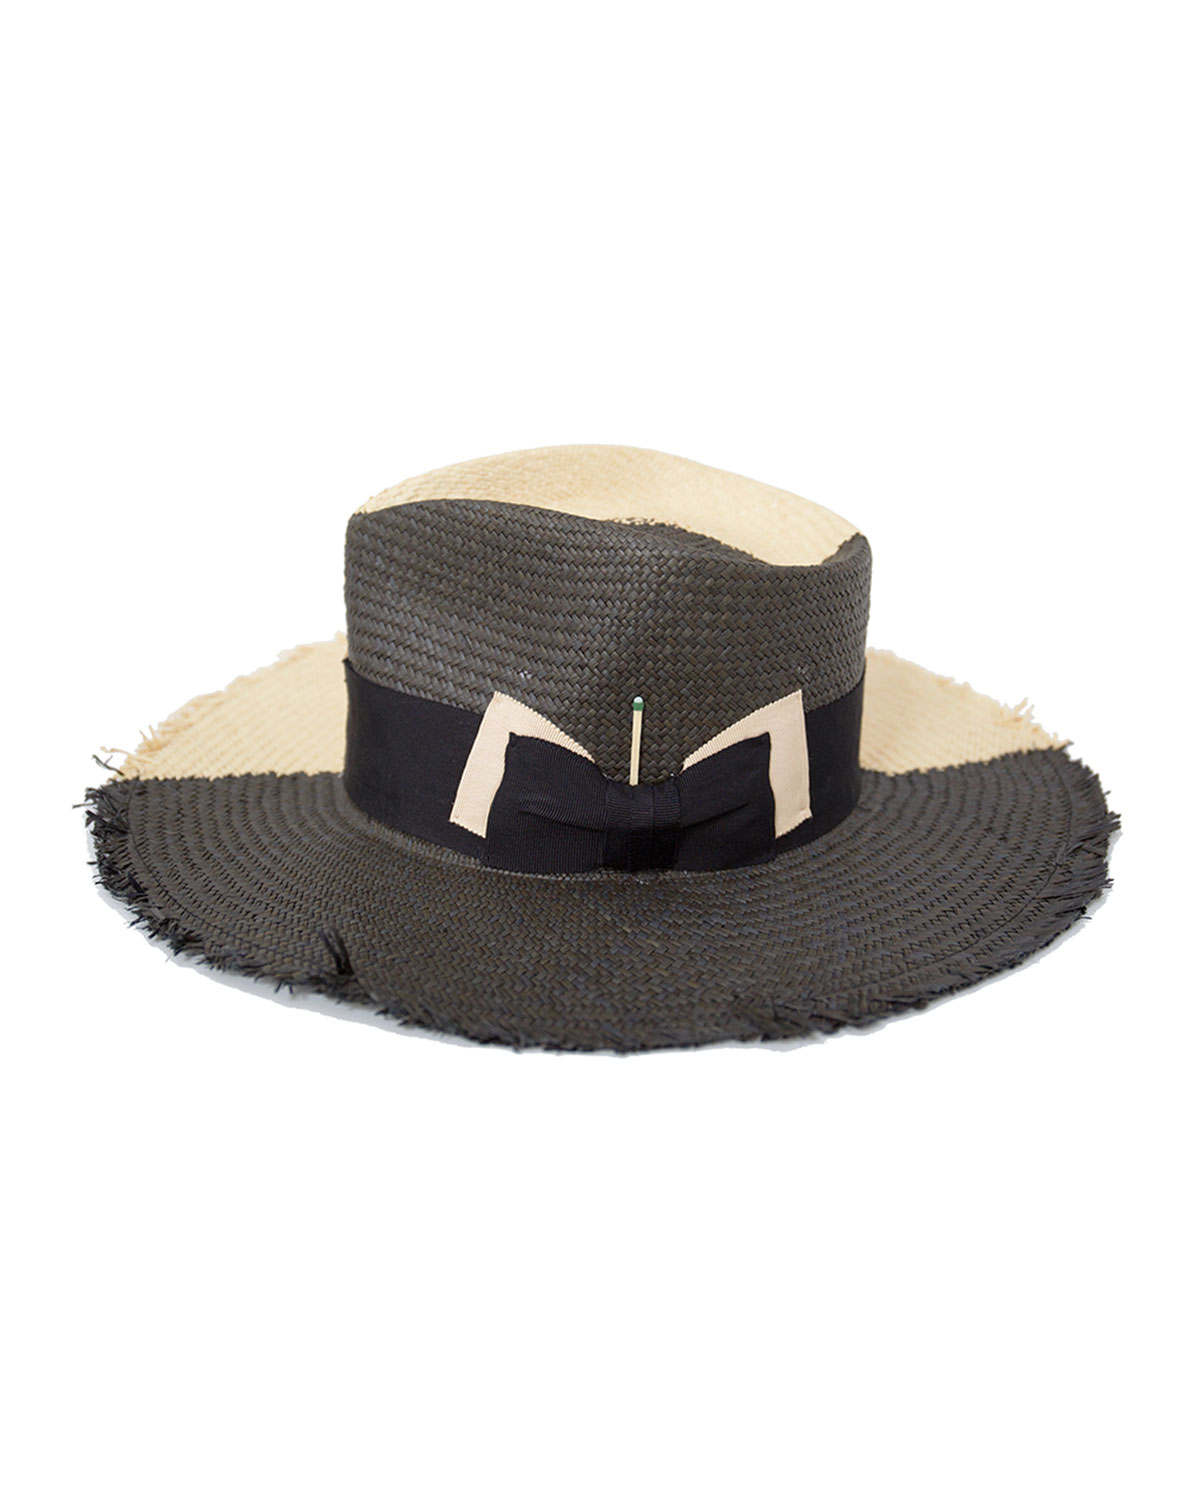 Nick Fouquet Tree Bones Two-Tone Straw Fedora Hat